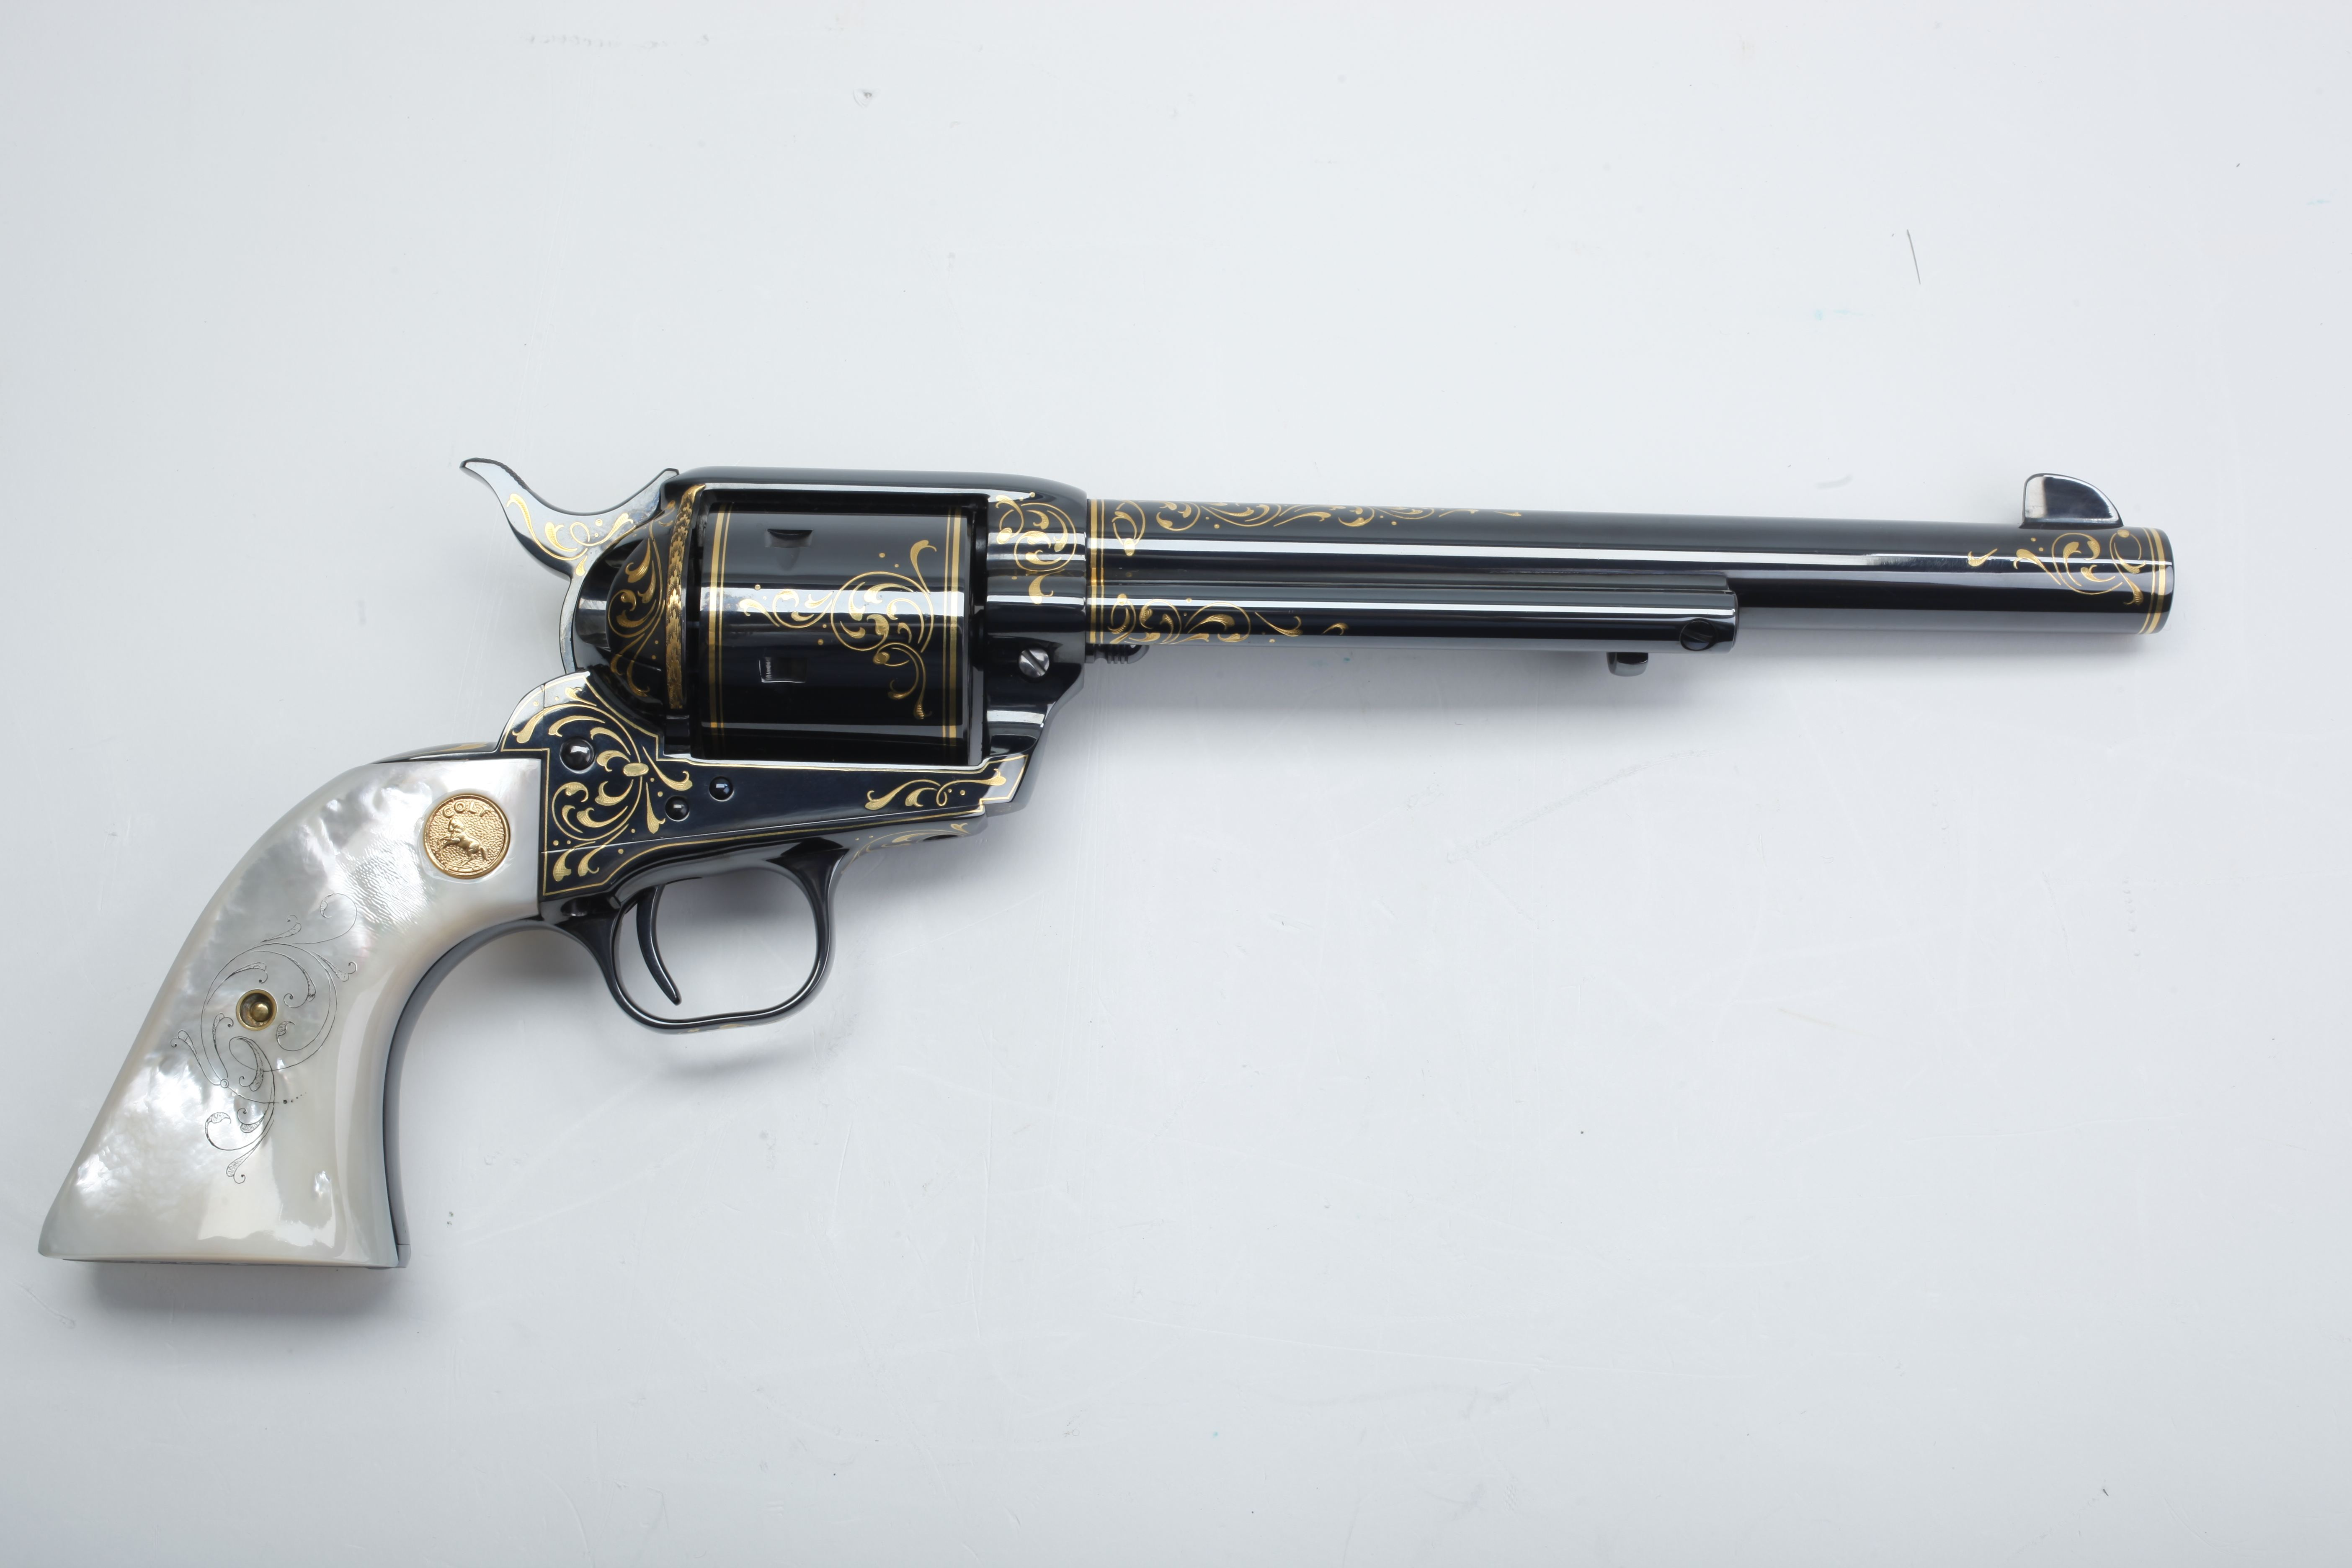 Colt 1956 Single Action Army Revolver